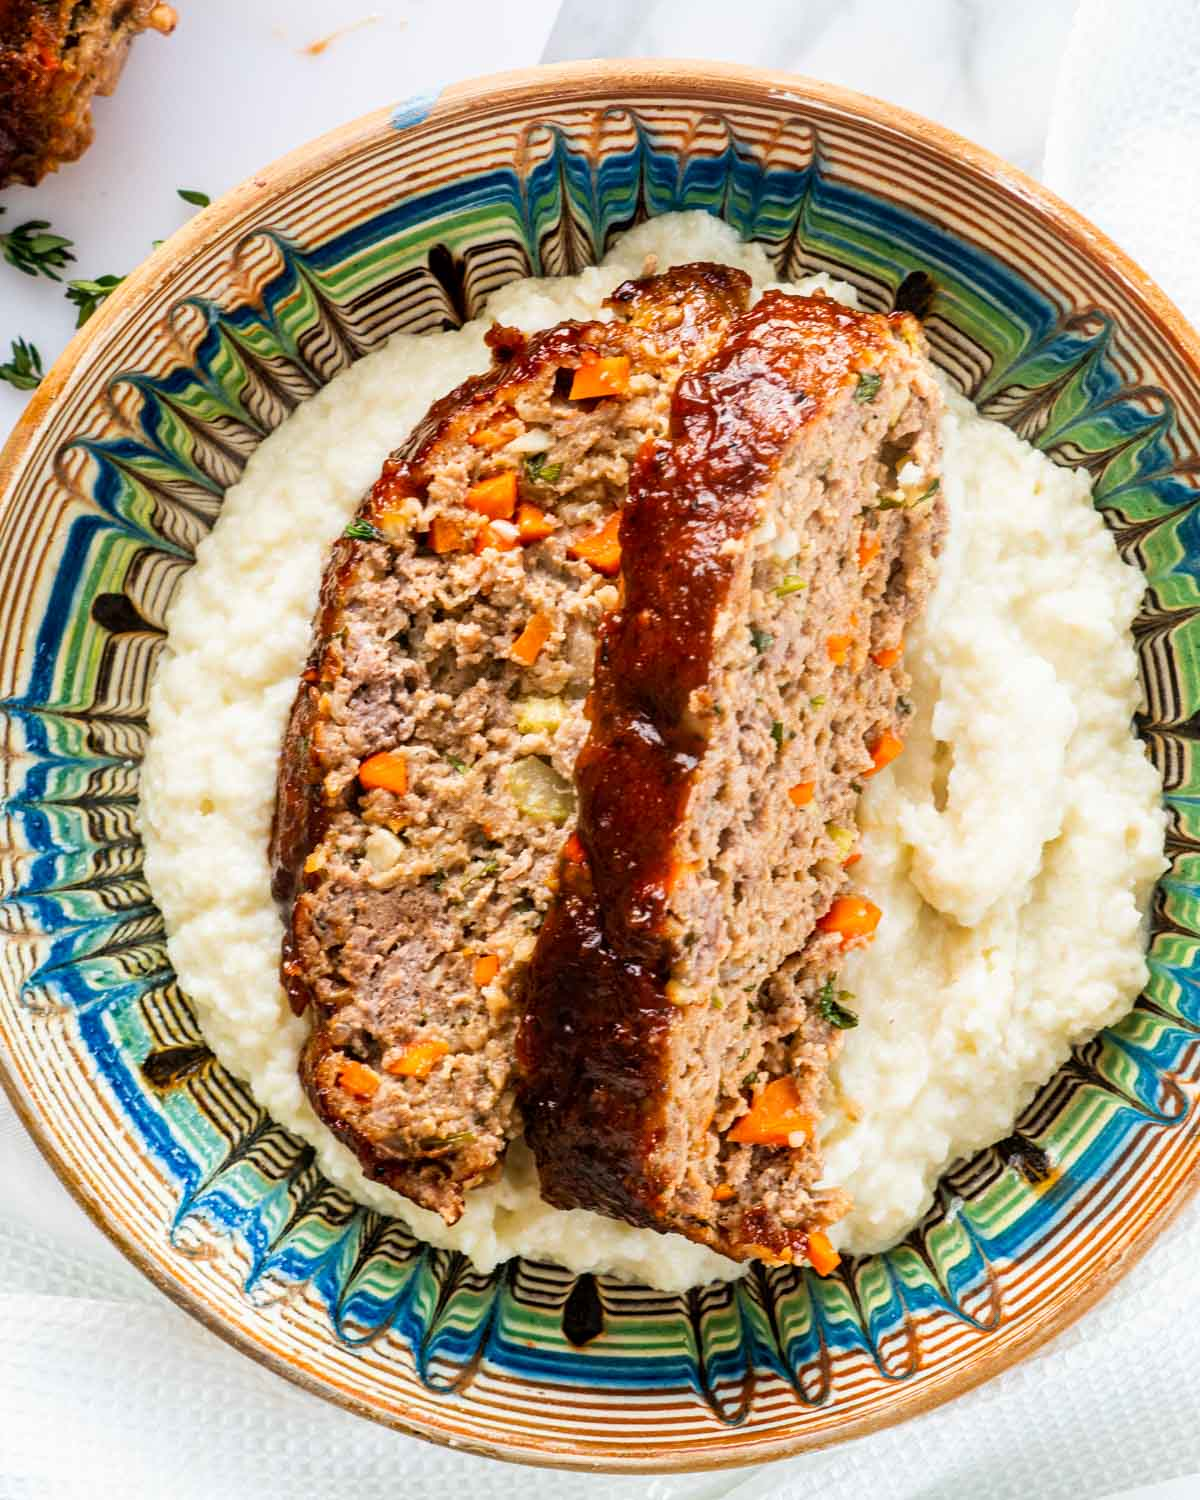 two slices of meatloaf over a bed of mashed cauliflower.